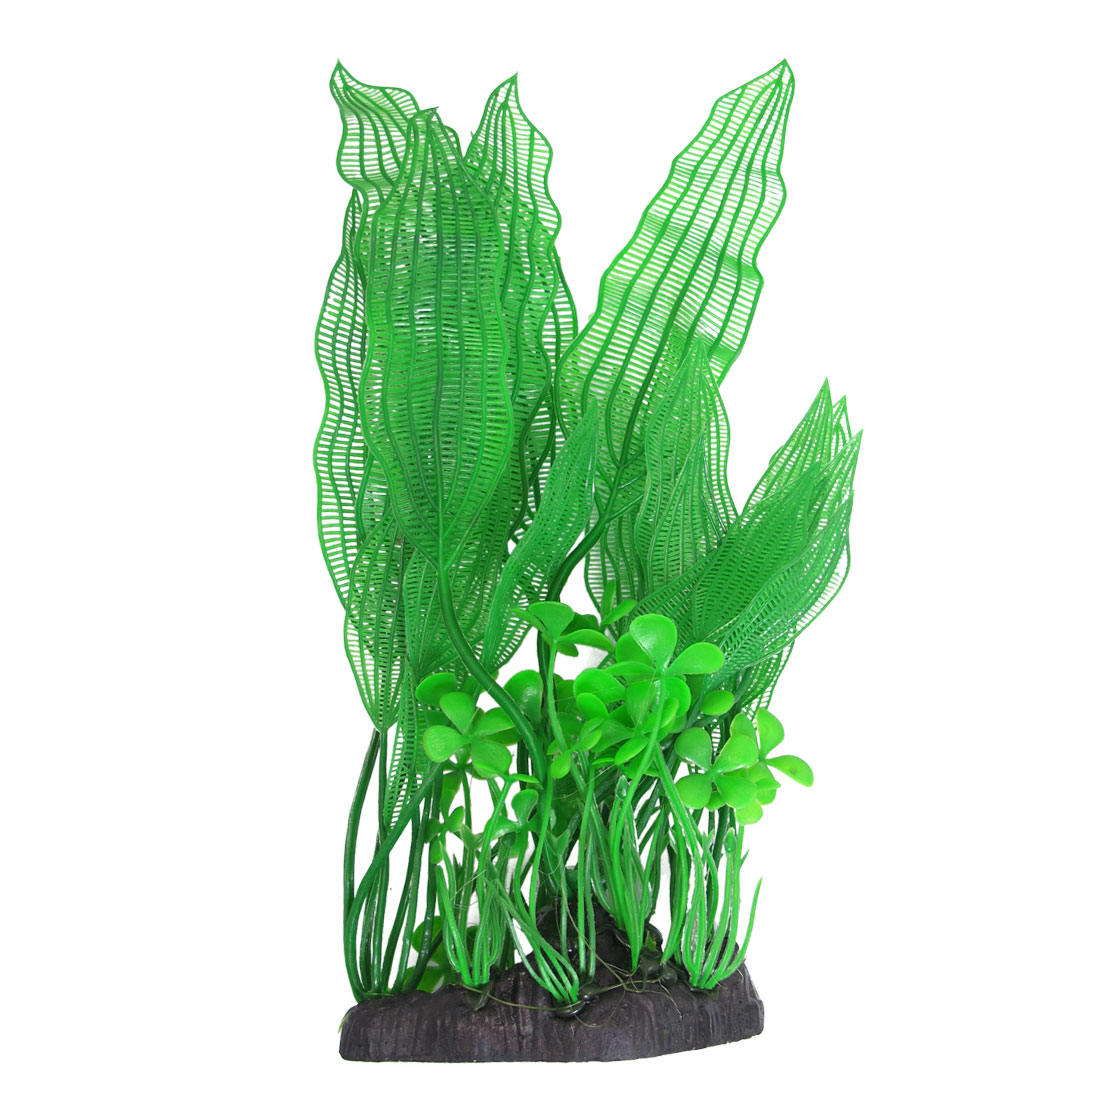 "Fish Tank Landscape Green Plastic Aquatic Grass Plant 12.2"" Height"